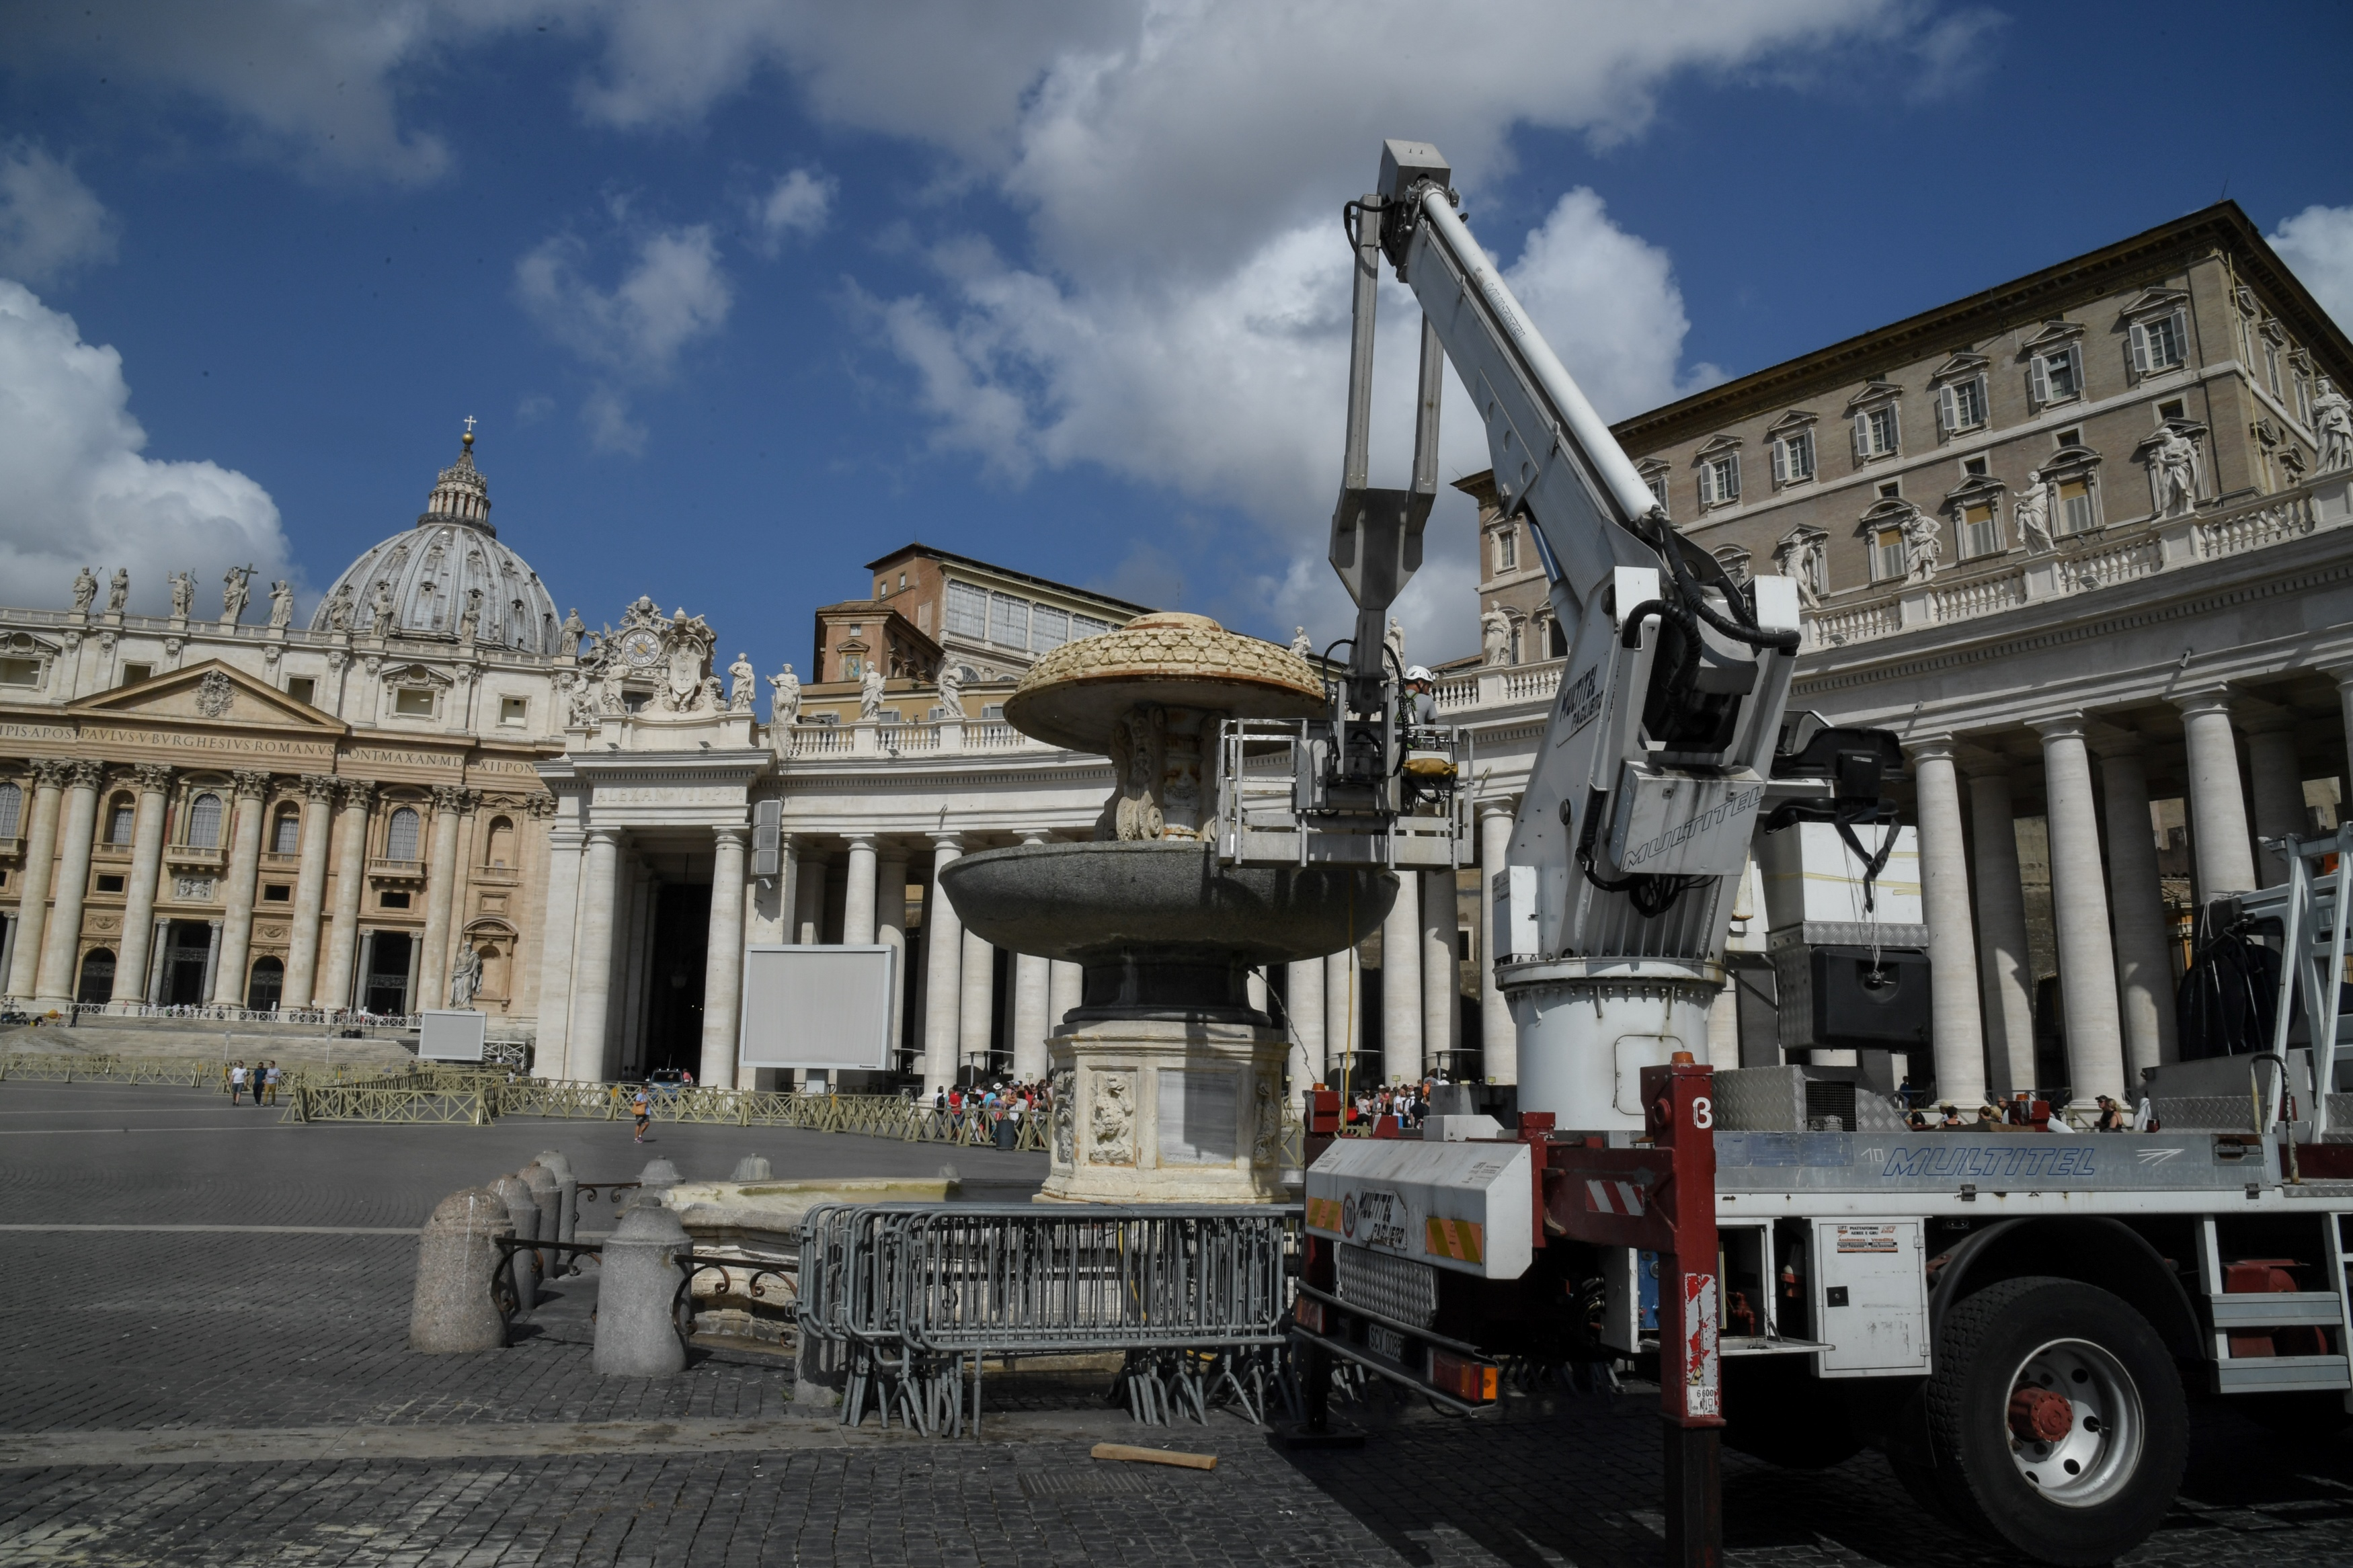 A mobile crane is seen parked at a dry fountain in St Peter's Square, in Vatican city, after the Vatican authorities decision to turn off some of the fountains due to a drought affecting Rome, on July 25, 2017.